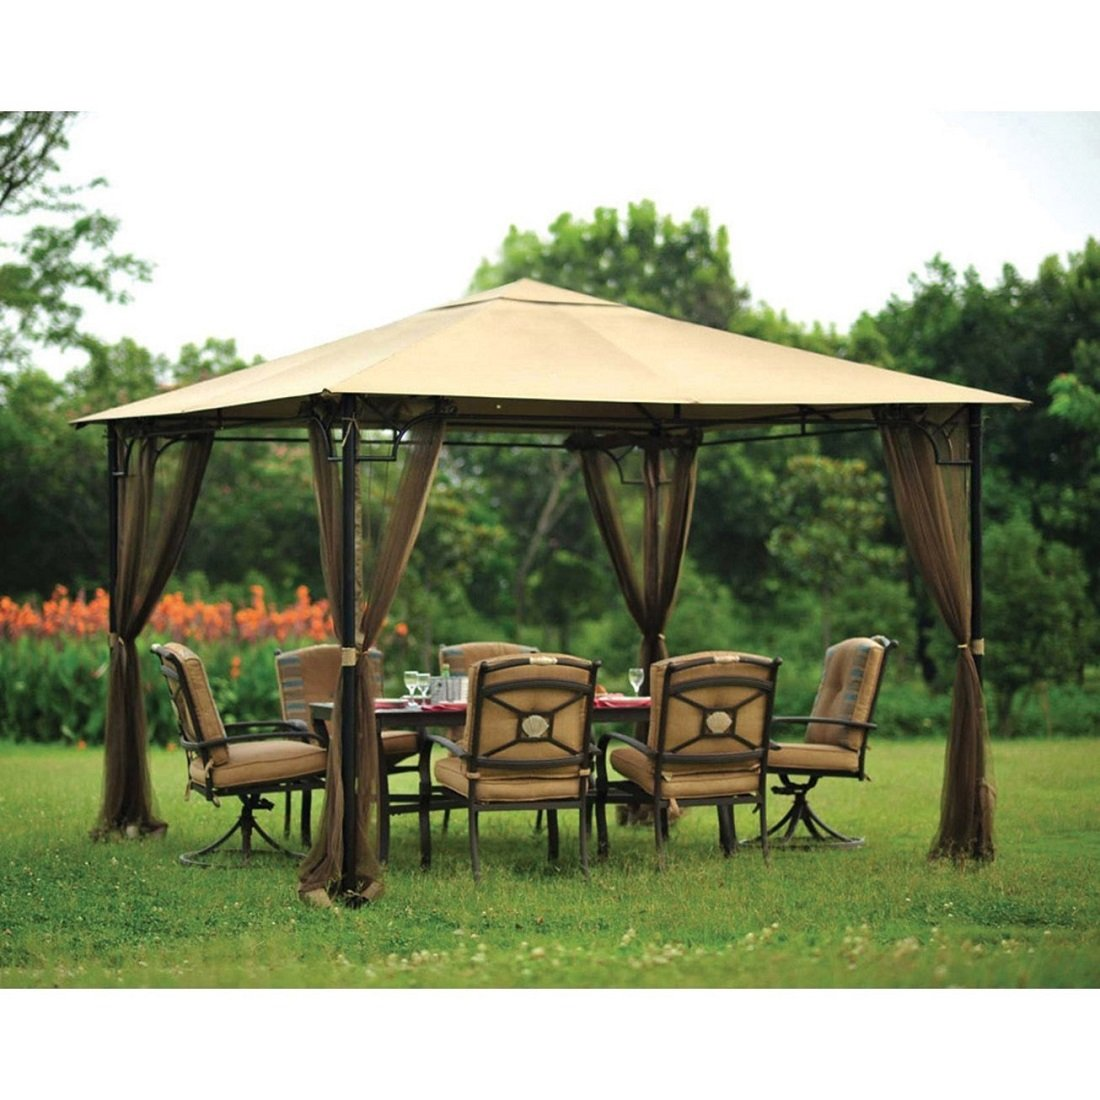 Amazon.com  Living Accents 10ft x 10ft Gazebo Netting (gazebo sold separately)  Garden u0026 Outdoor  sc 1 st  Amazon.com : patio tent cover - memphite.com